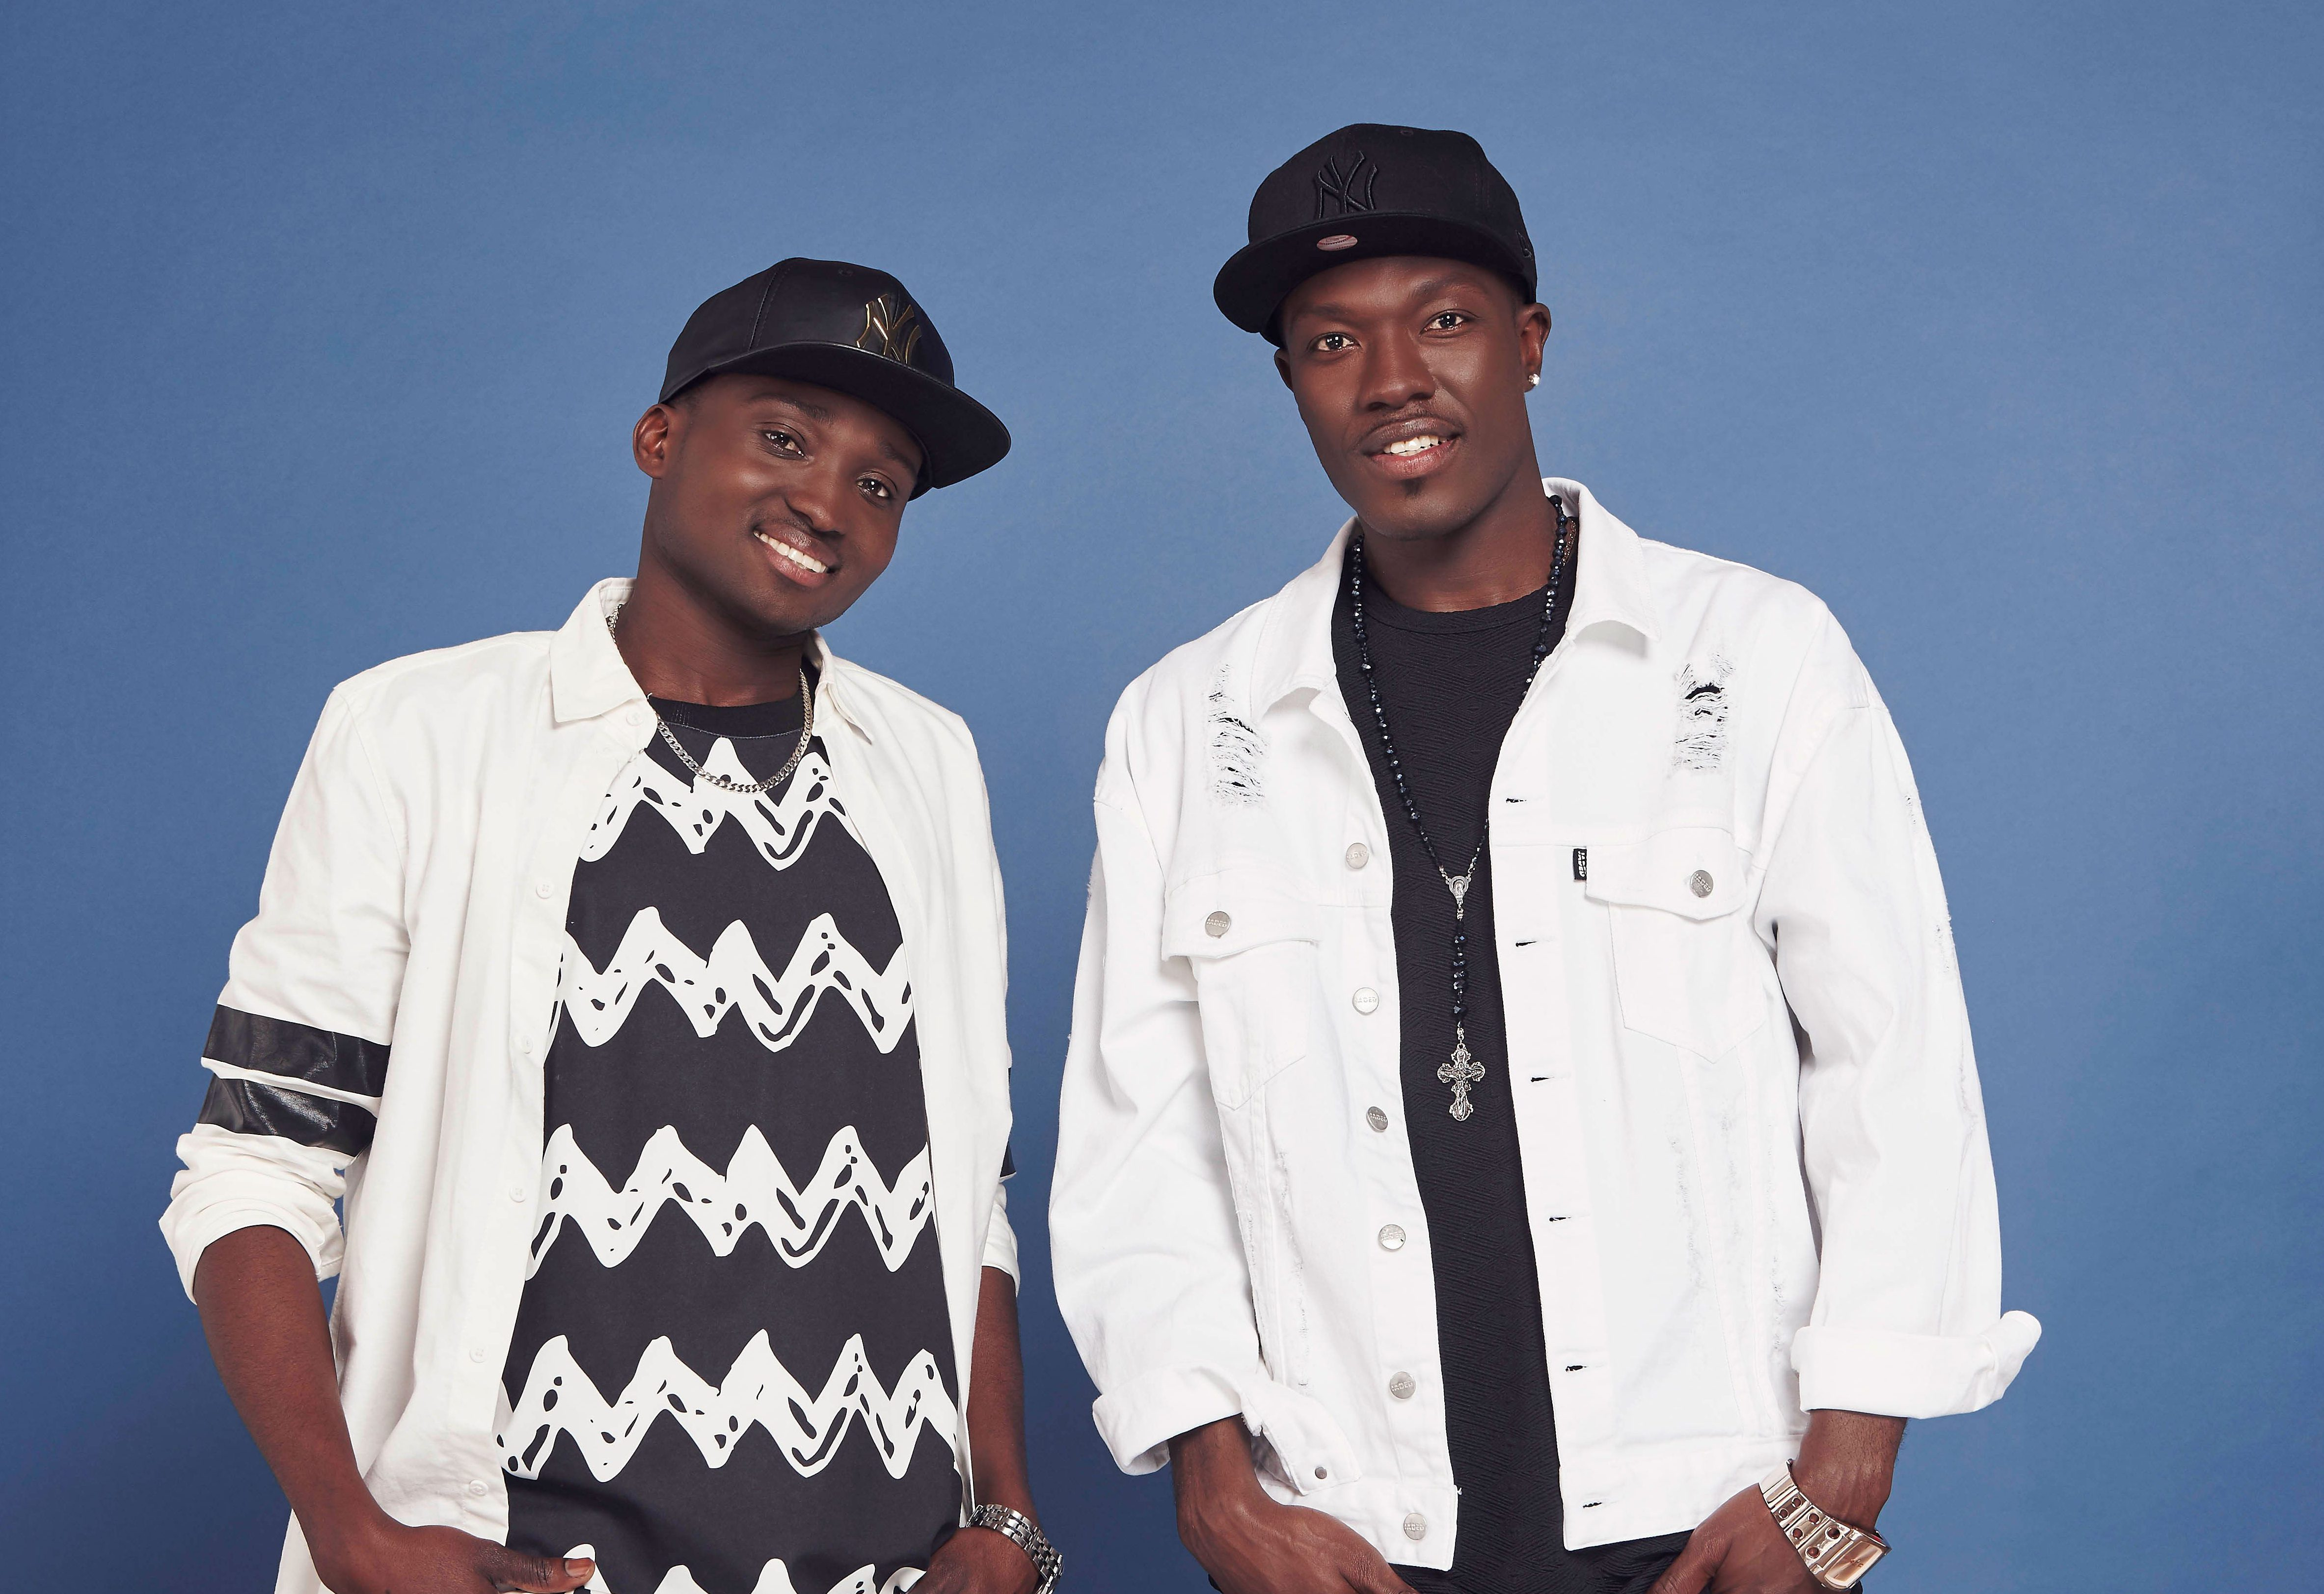 'You don't need to be an adult to have talent': Reggie N Bollie praise X Factor's lower age limit 'to find new Liam Payne'